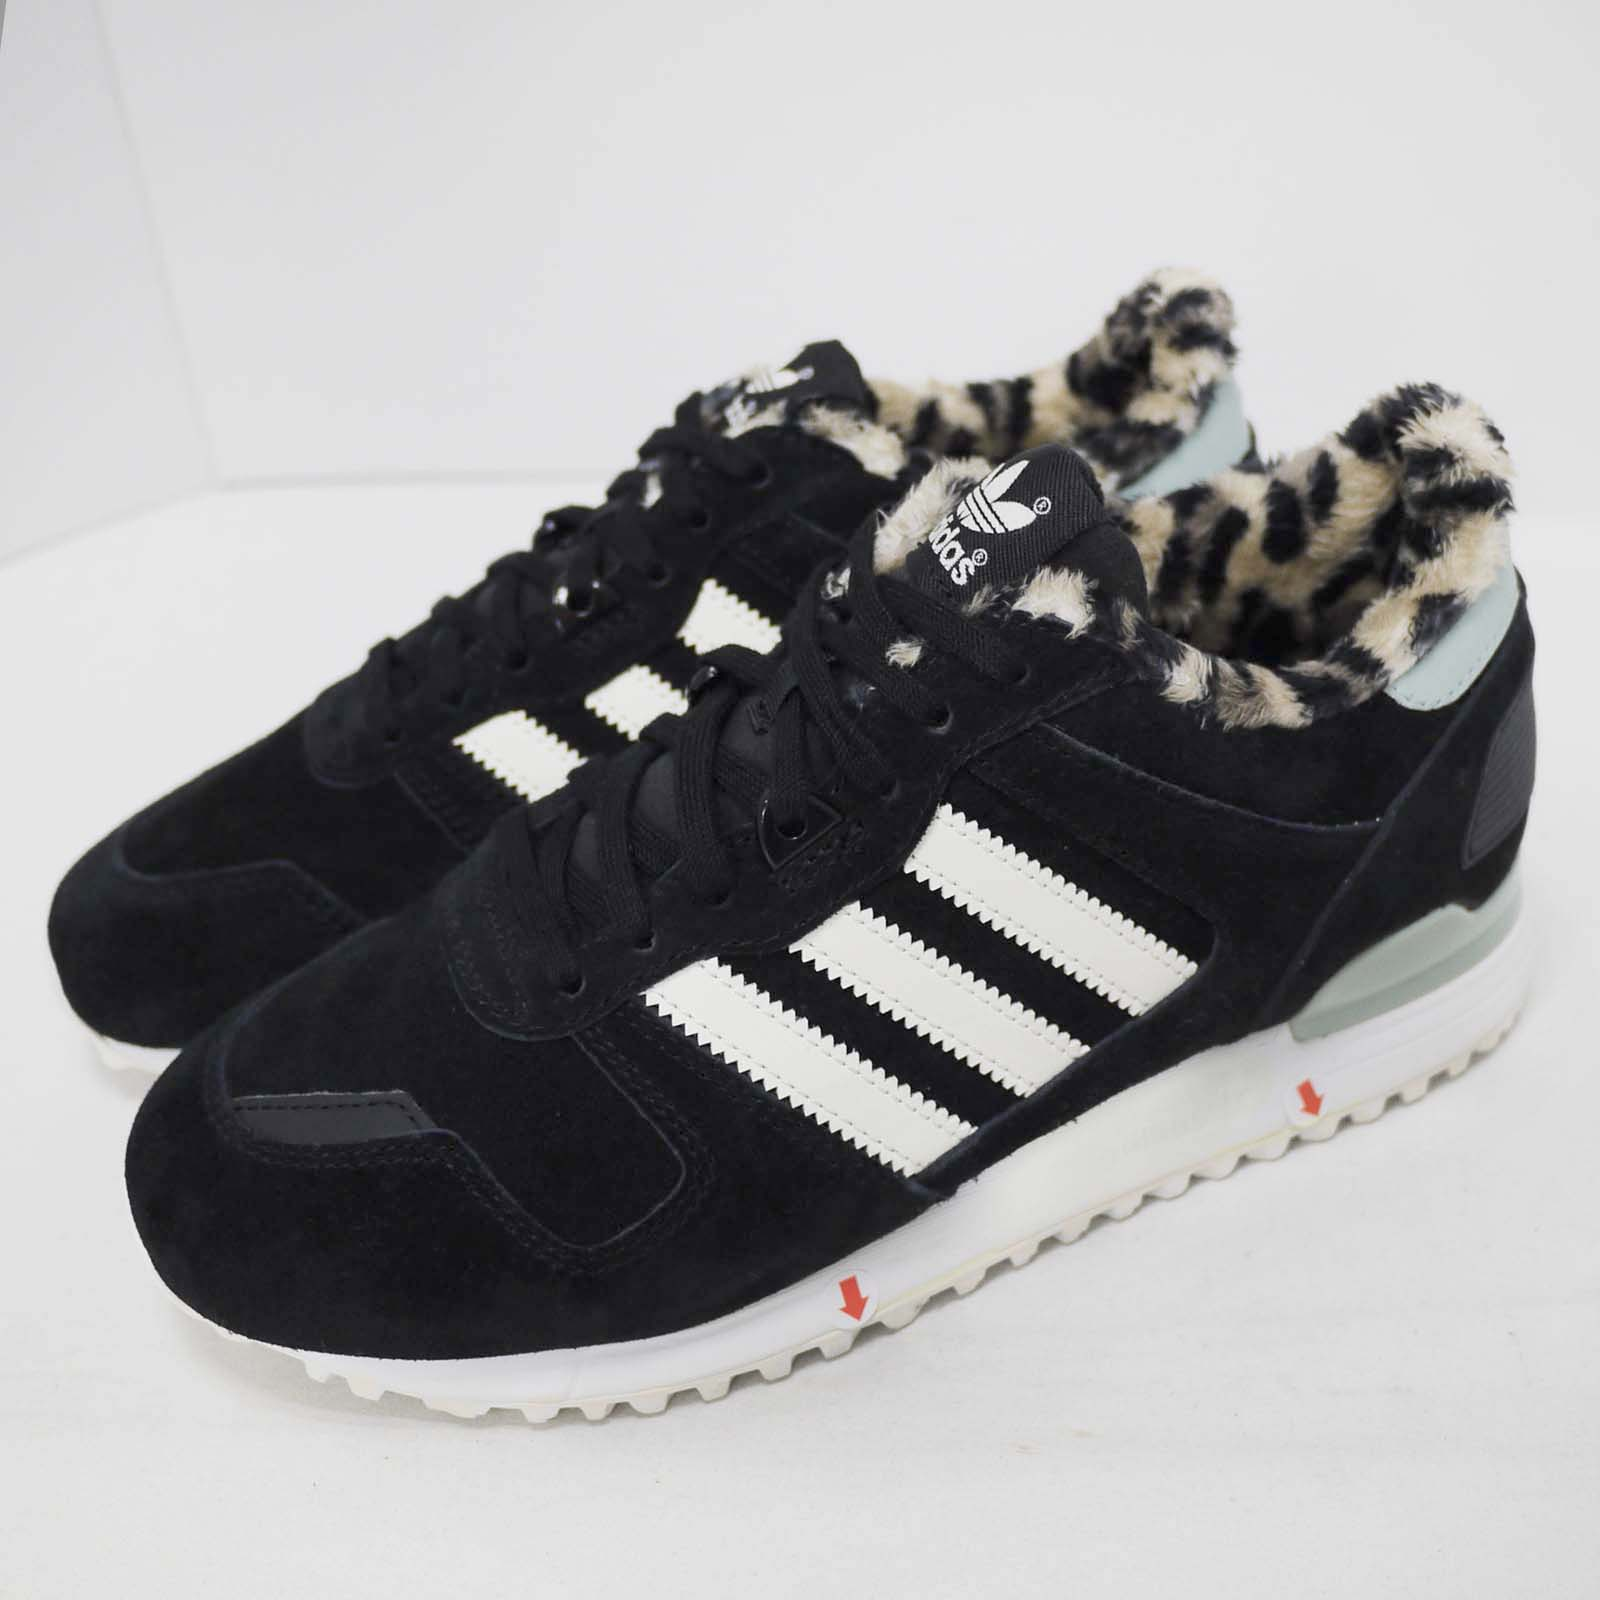 quality design bc07d 562dc Details about adidas Originals ZX 700 W Both Feet With Discoloration Women  Shoes B25718